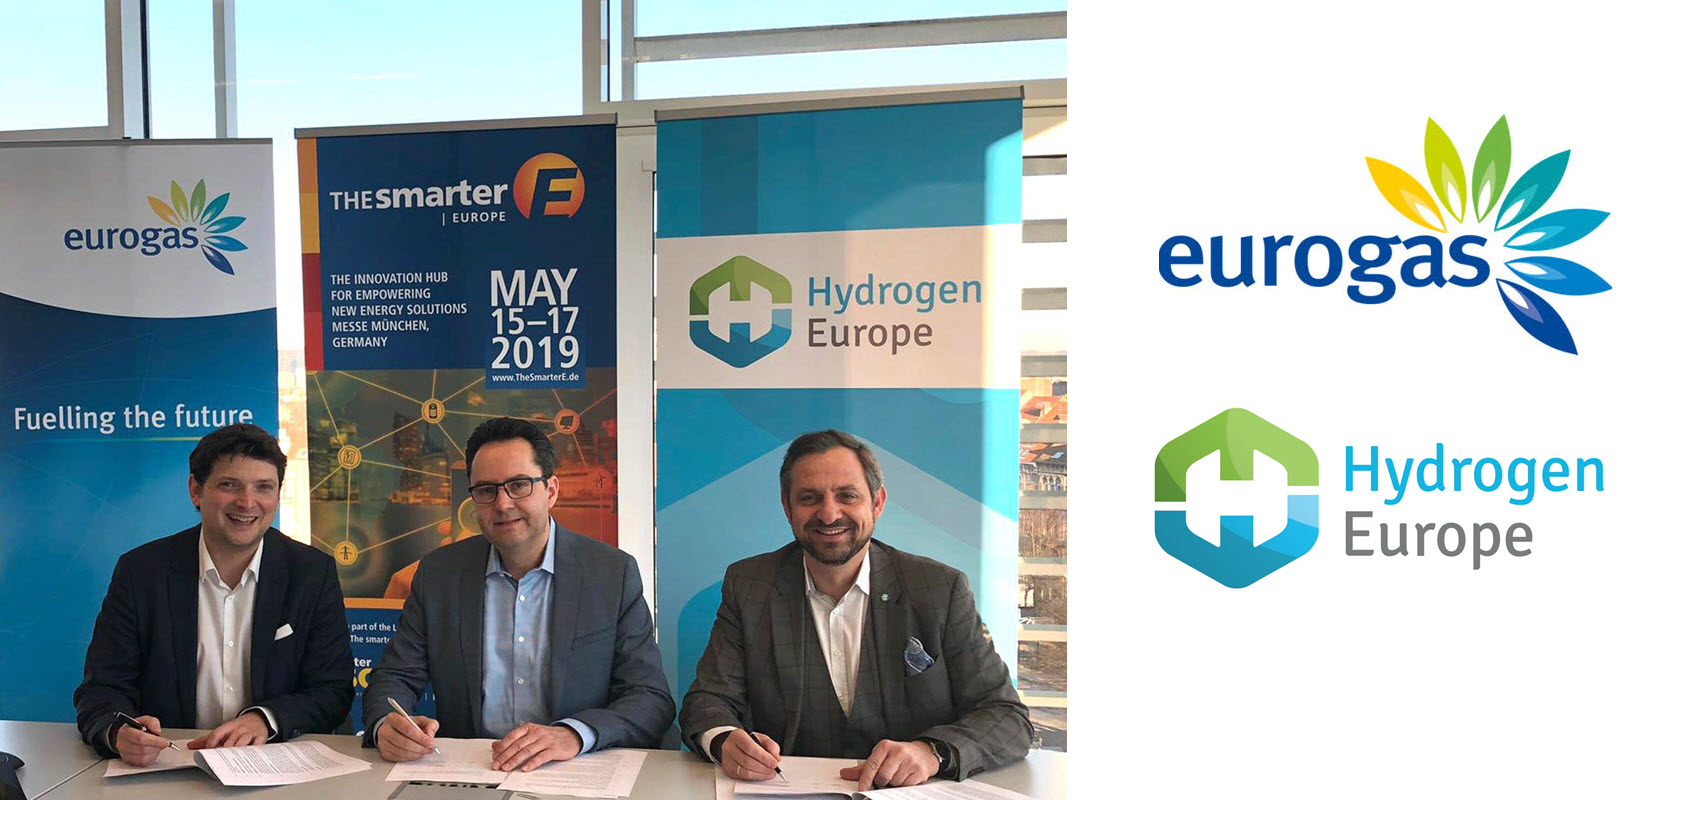 The smarter E Europe Eurogas Hydrogen Europe signing ceremony